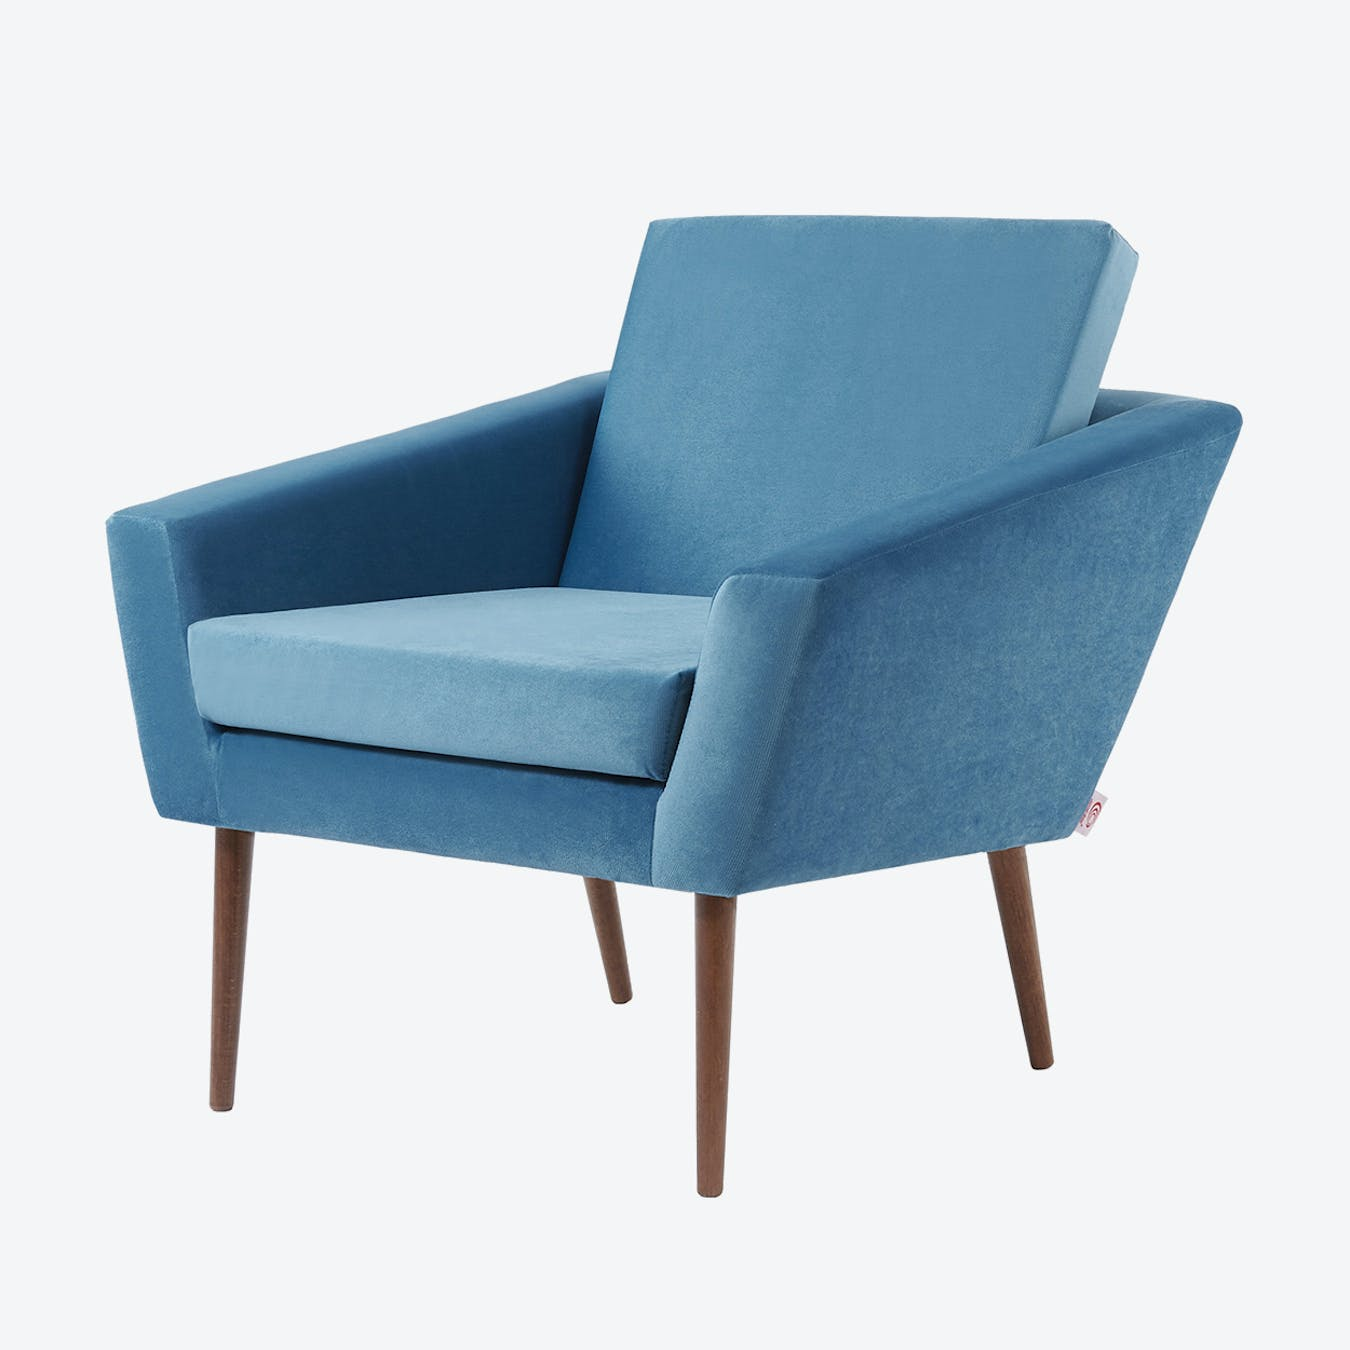 Supernova Chair - Velvet Line in Ocean Blue